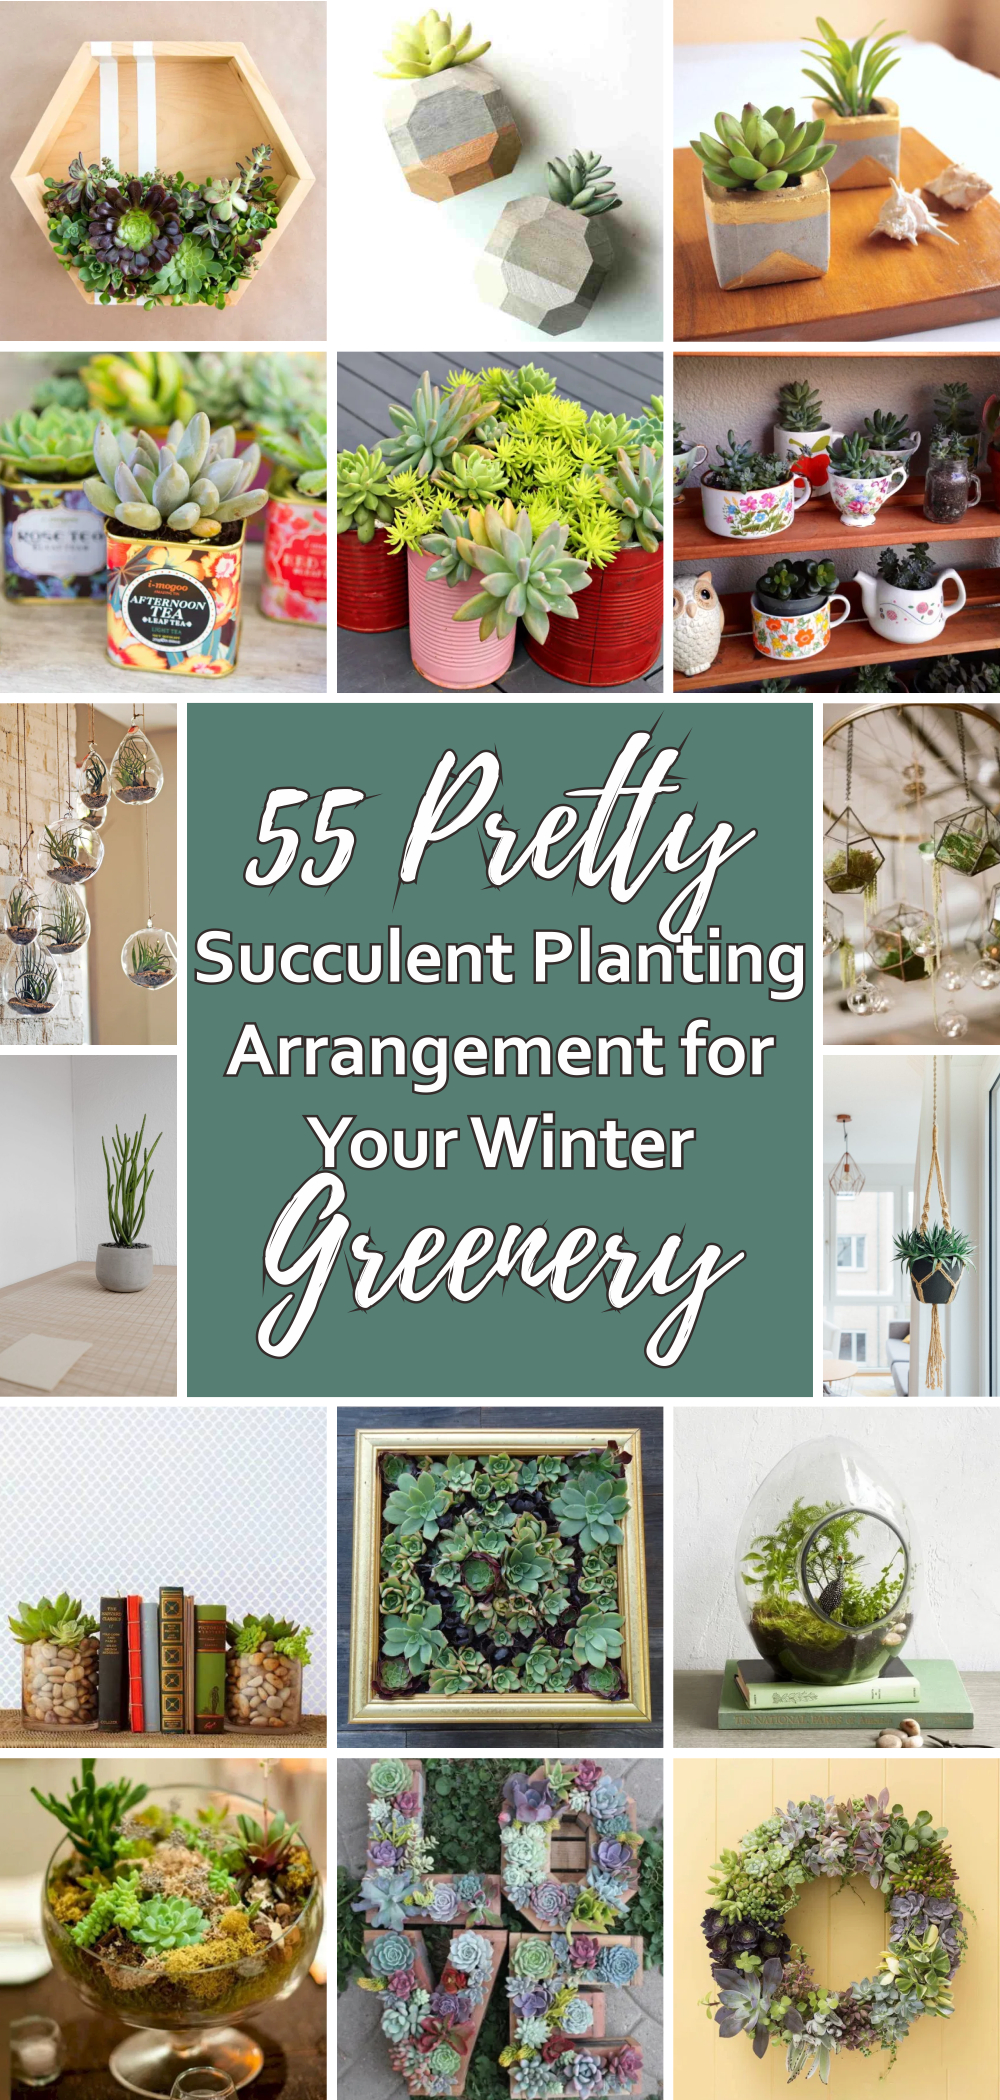 55 pretty succulent planting arrangement for your winter greenery 1